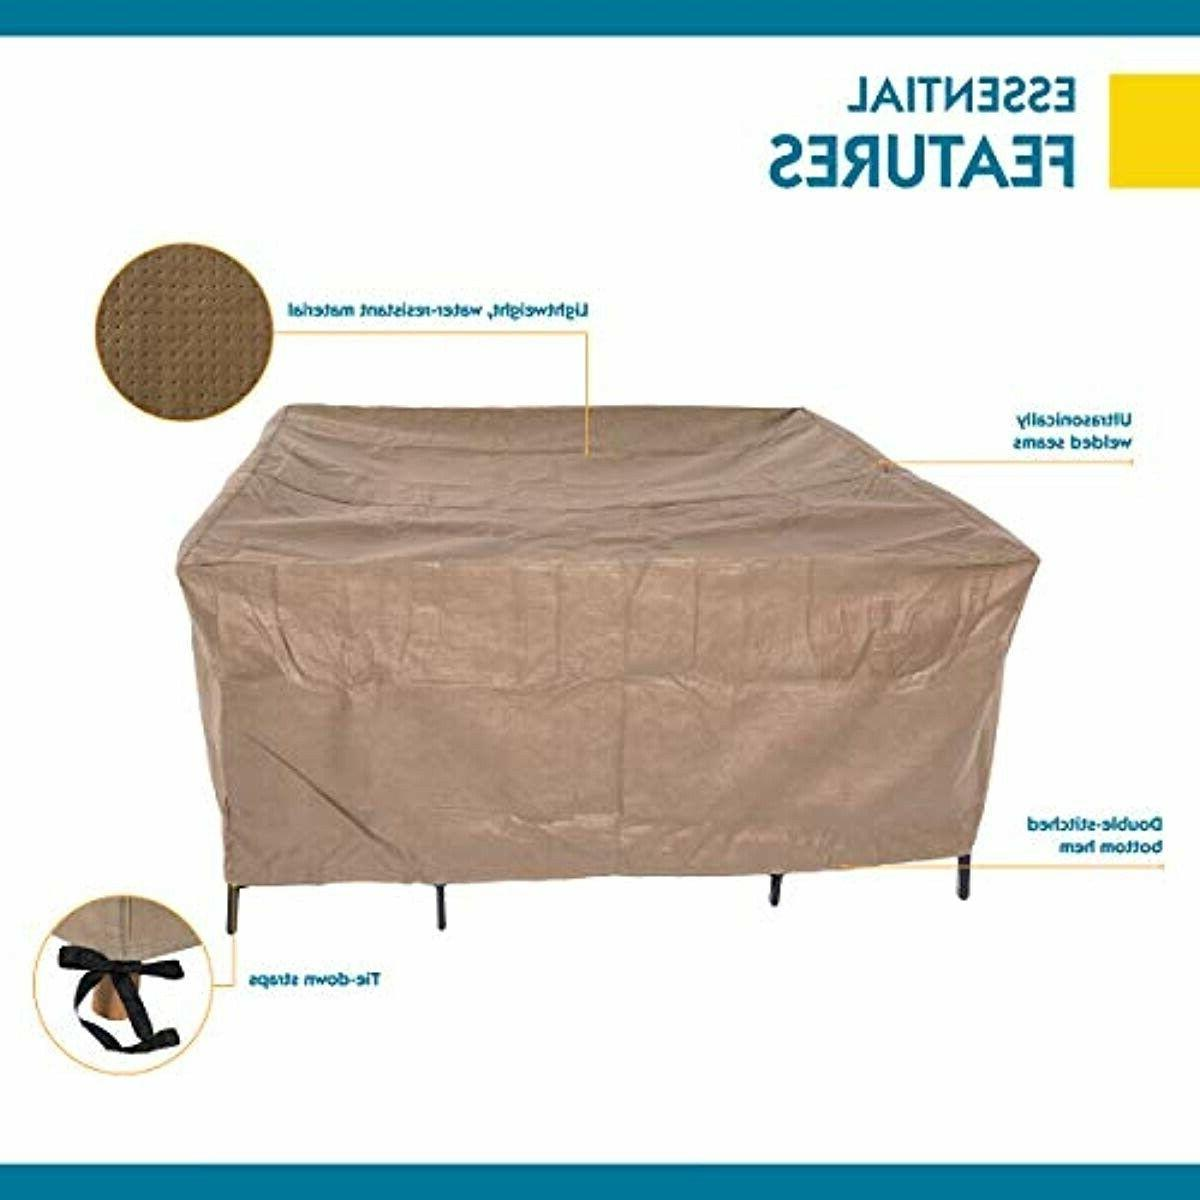 Duck Patio Table Chair Cover, Fits